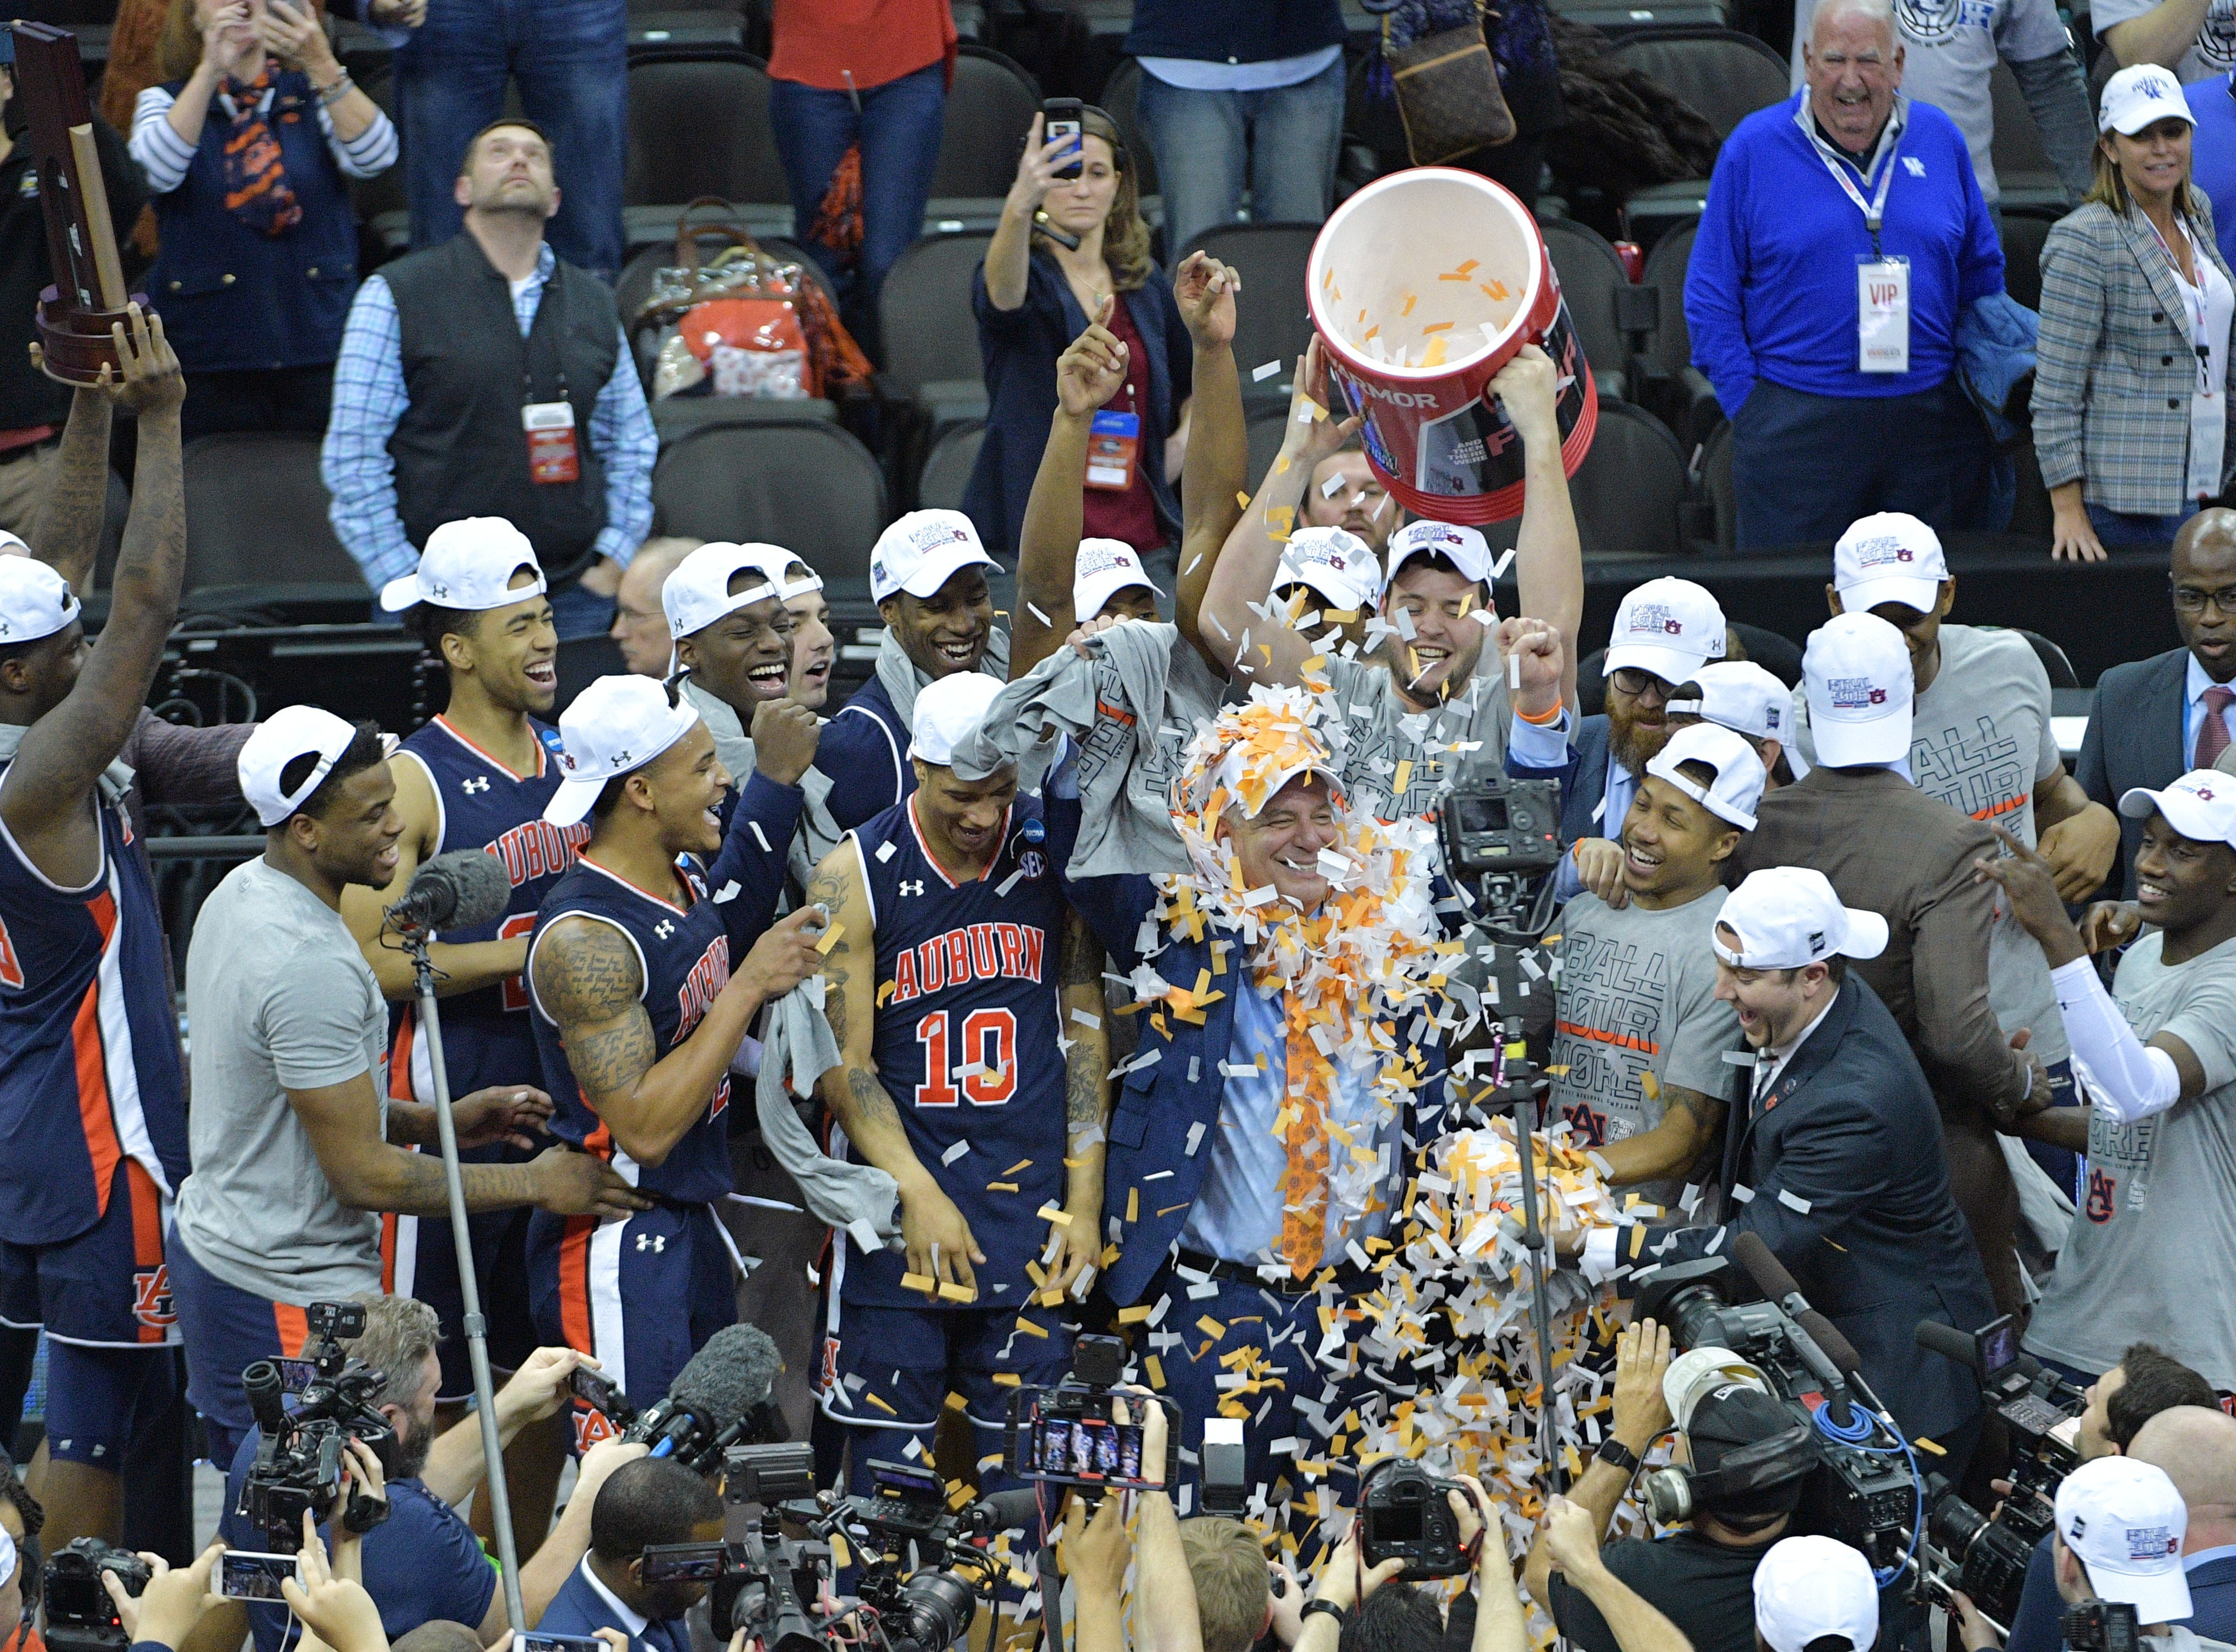 Mar 31, 2019; Kansas City, MO, United States; Auburn Tigers head coach Bruce Pearl gets confetti dumped on his head after defeating the Kentucky Wildcats in the championship game of the midwest regional of the 2019 NCAA Tournament at Sprint Center. Mandatory Credit: Denny Medley-USA TODAY Sports